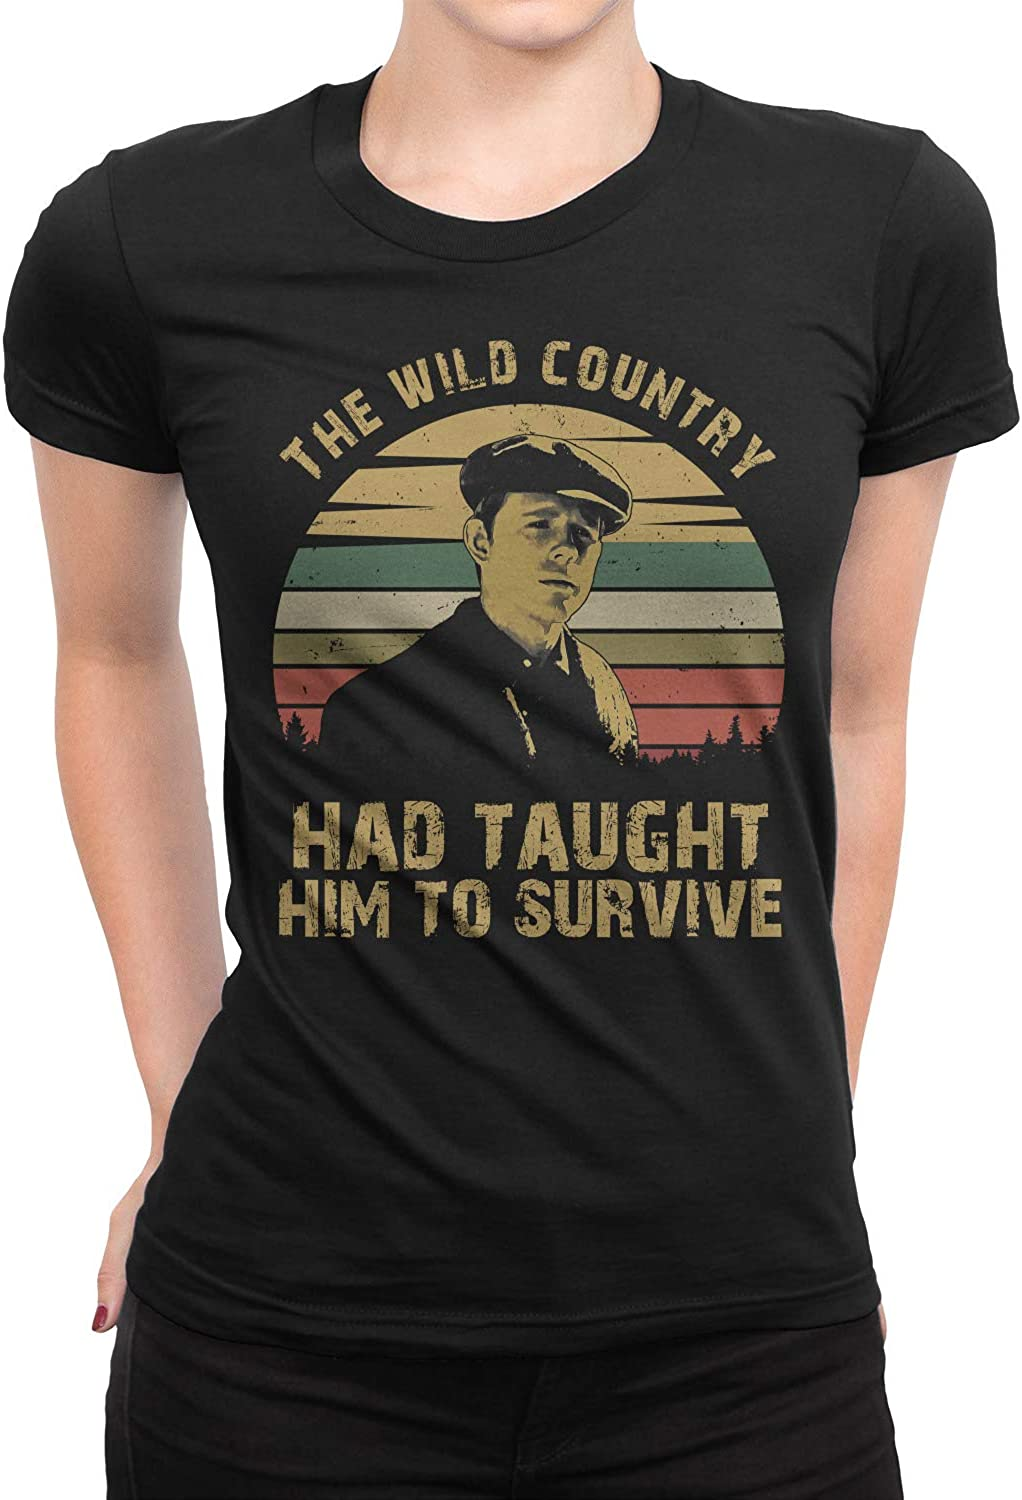 The Country Had Taught Him to Survive Vintage T-Shirt